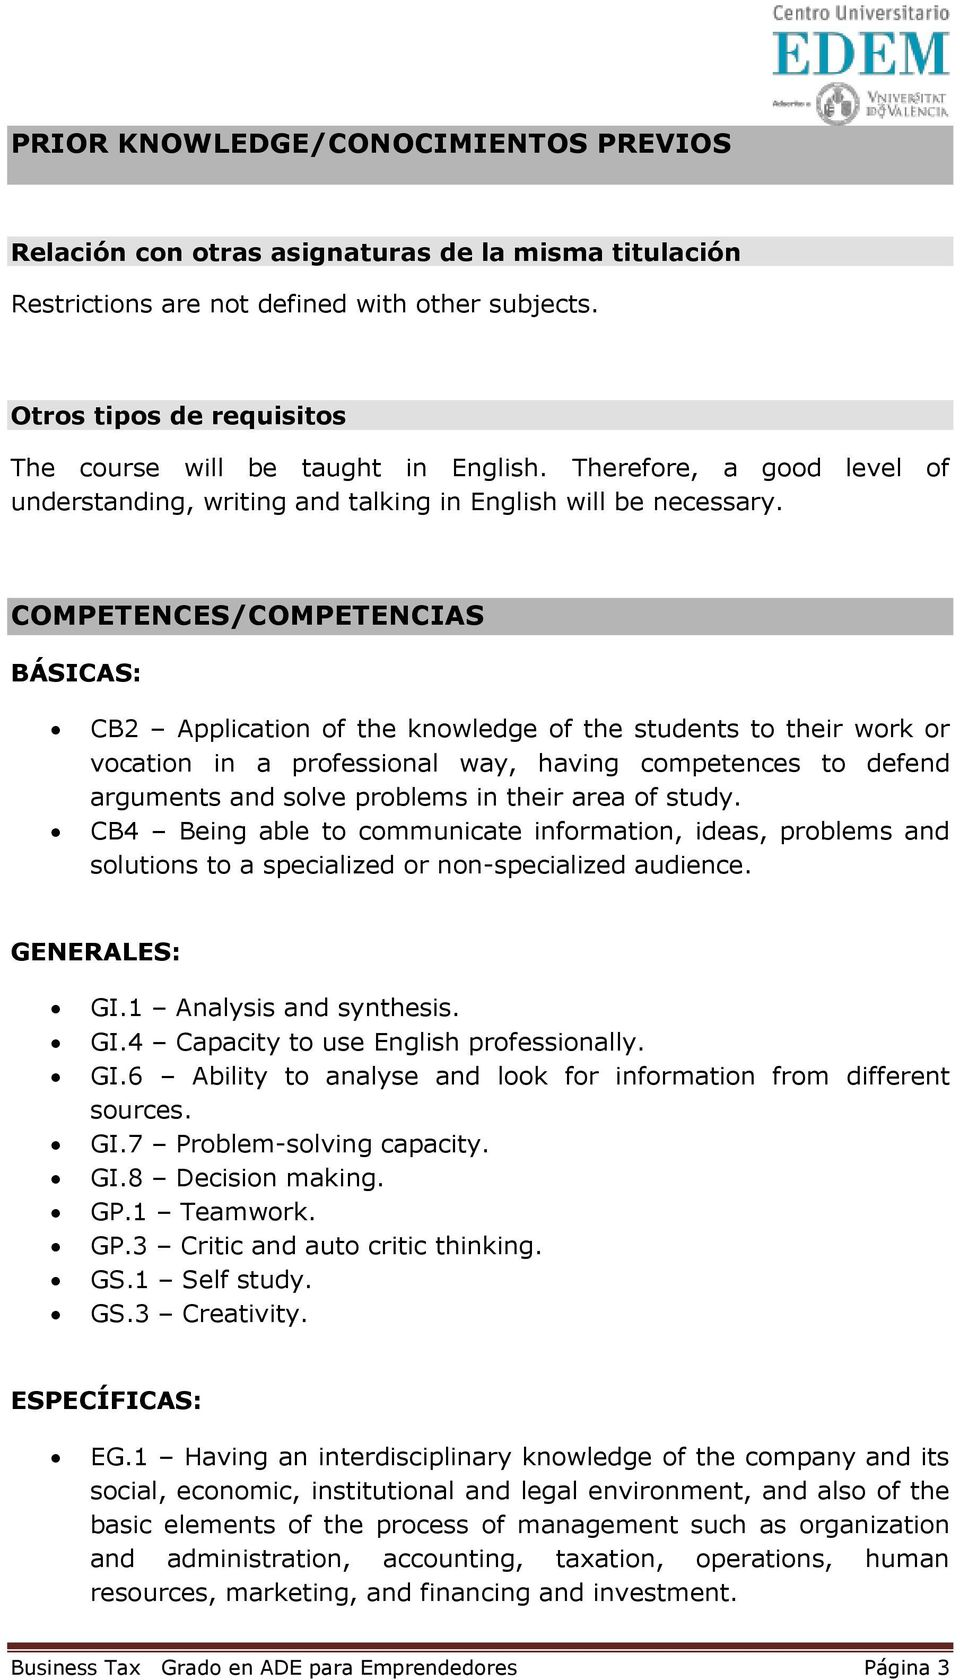 COMPETENCES/COMPETENCIAS BÁSICAS: CB2 Application of the knowledge of the students to their work or vocation in a professional way, having competences to defend arguments and solve problems in their